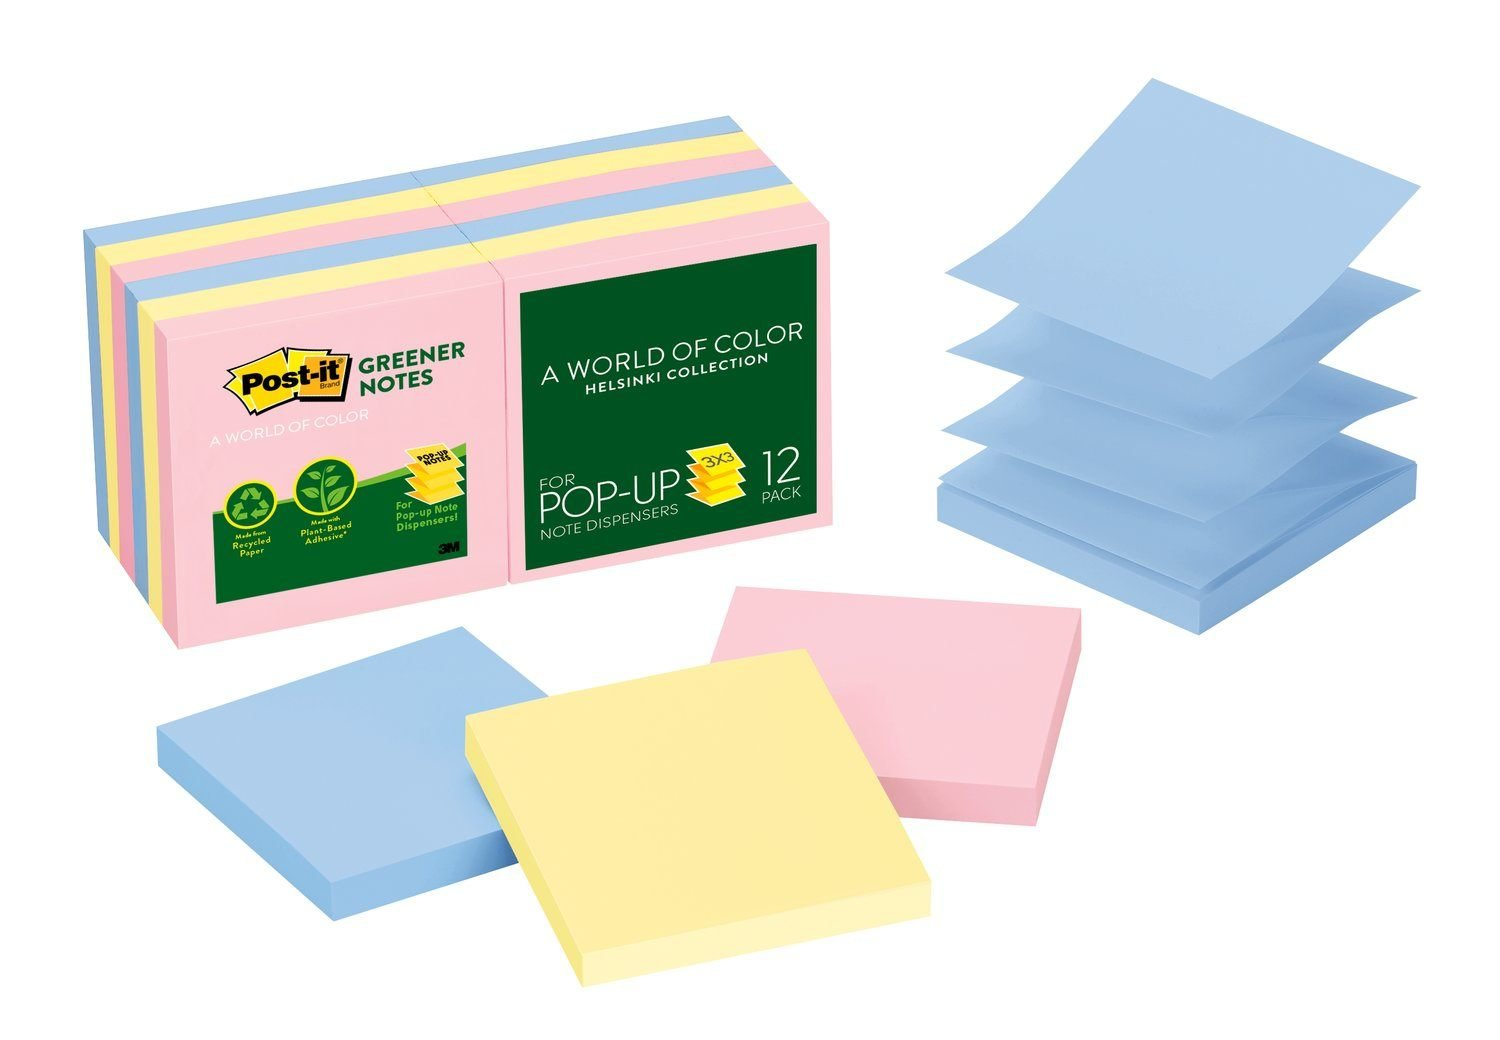 Post-it Greener Pop-up Notes, 3 in x 3 in, Helsinki Collection, 100 Sheets/Pad, 12 Pads/Pack (R330RP-12AP) by Post-it